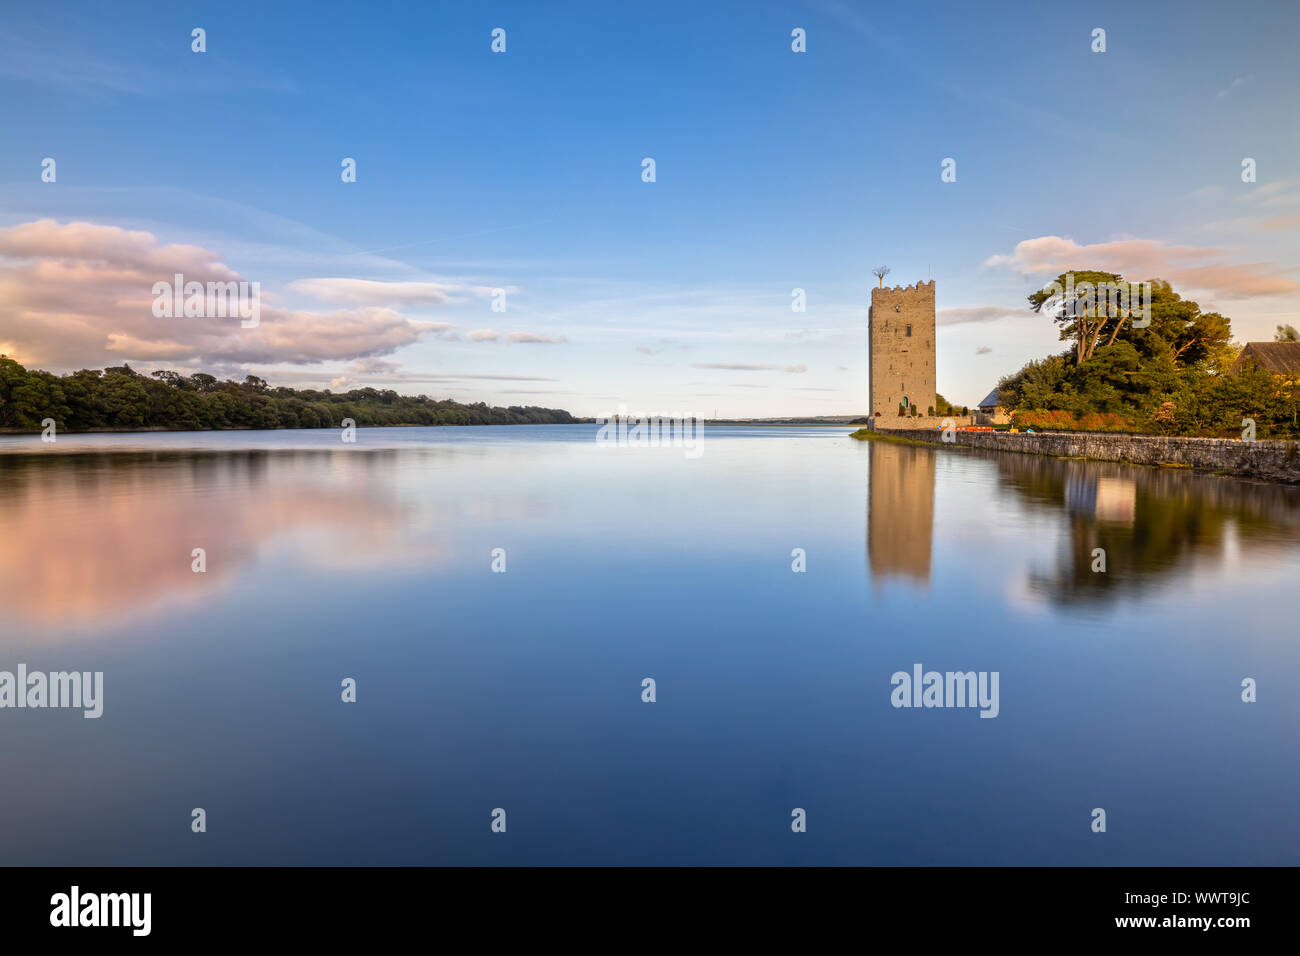 Belvelly Castle in County Cork, Ireland at Sunset Stock Photo